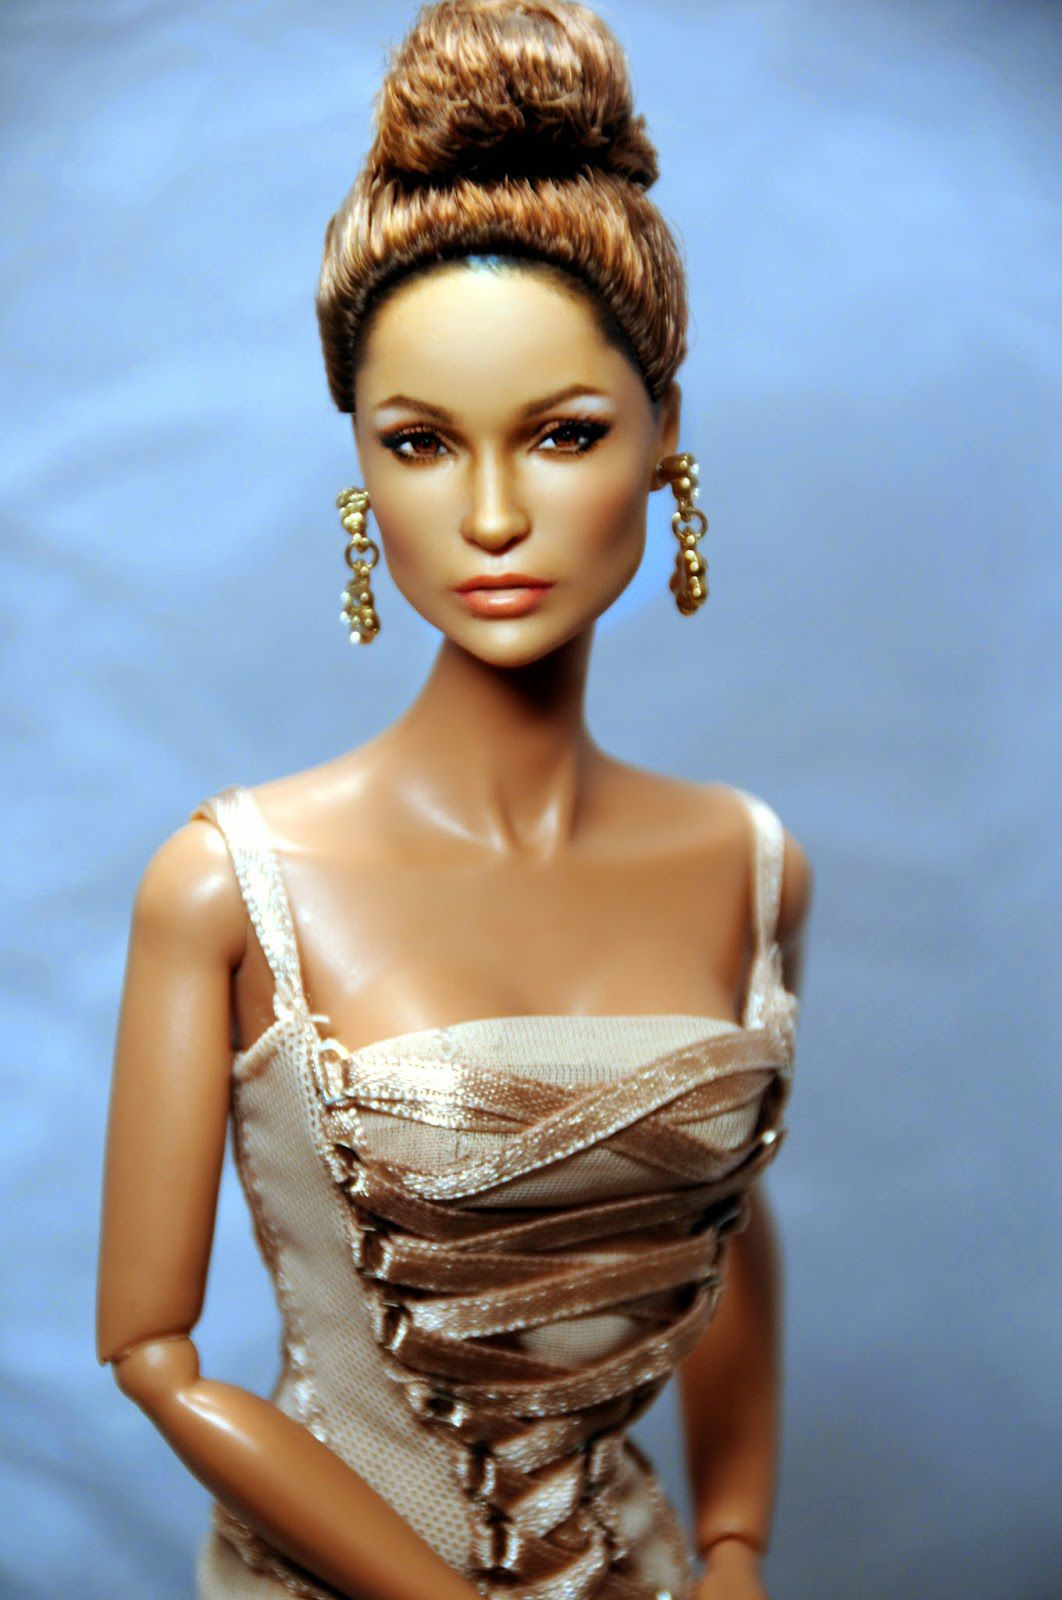 JENNIFER LOPEZ - BARBIE - NOEL CRUZ